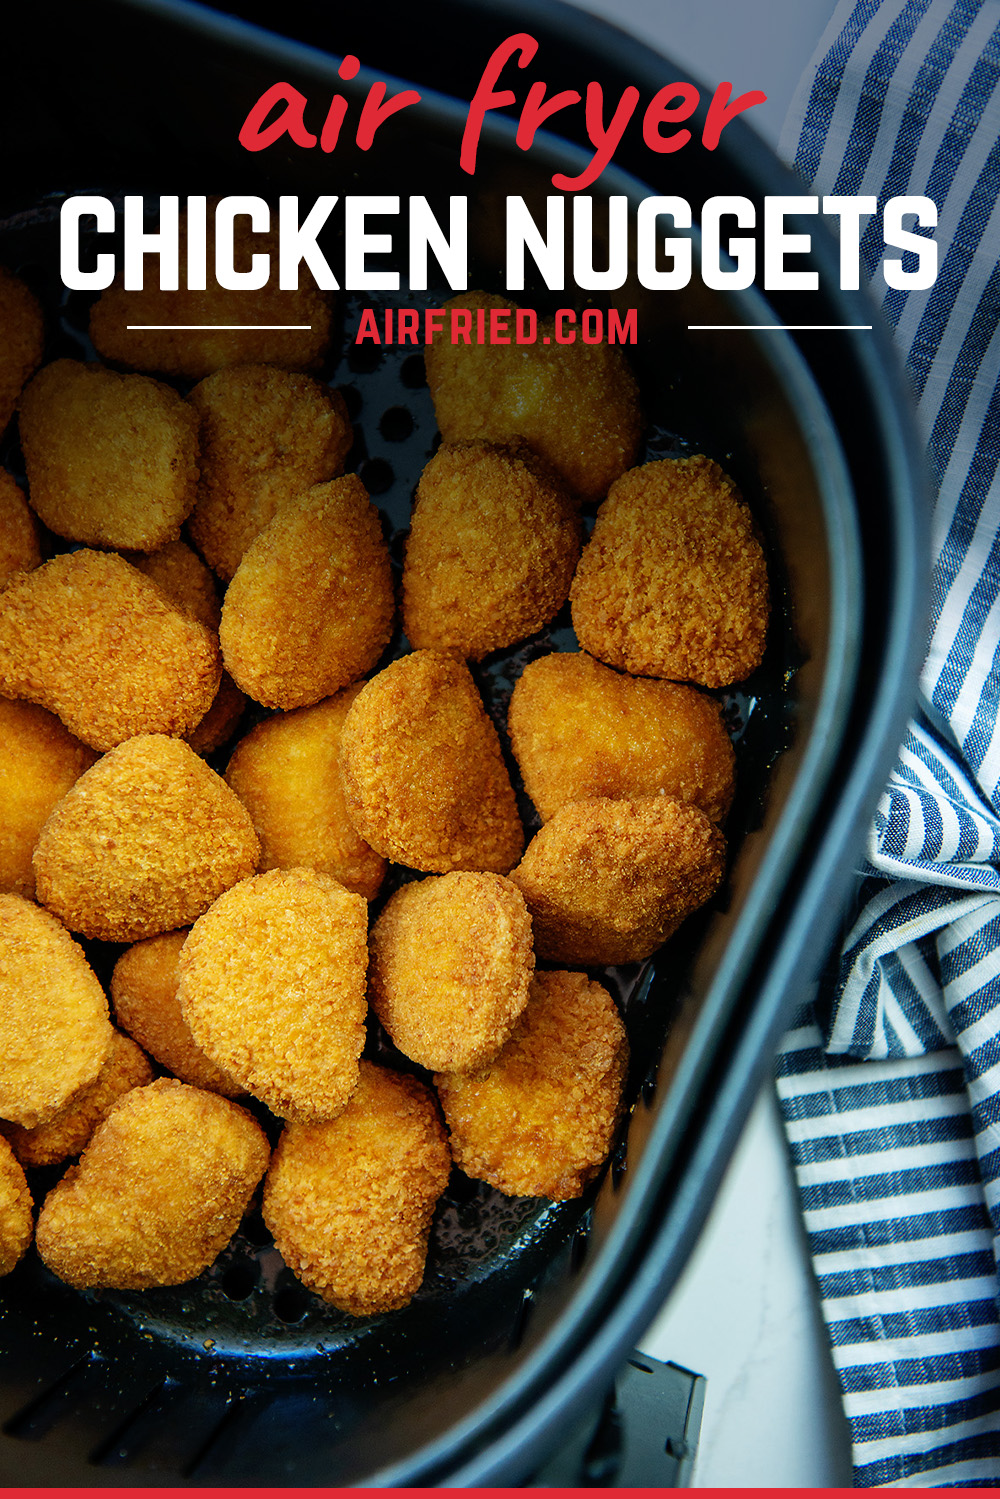 You can make frozen nuggets come out crispy by cooking them in your air fryer!  #chickennuggets #easyrecipes #airfried